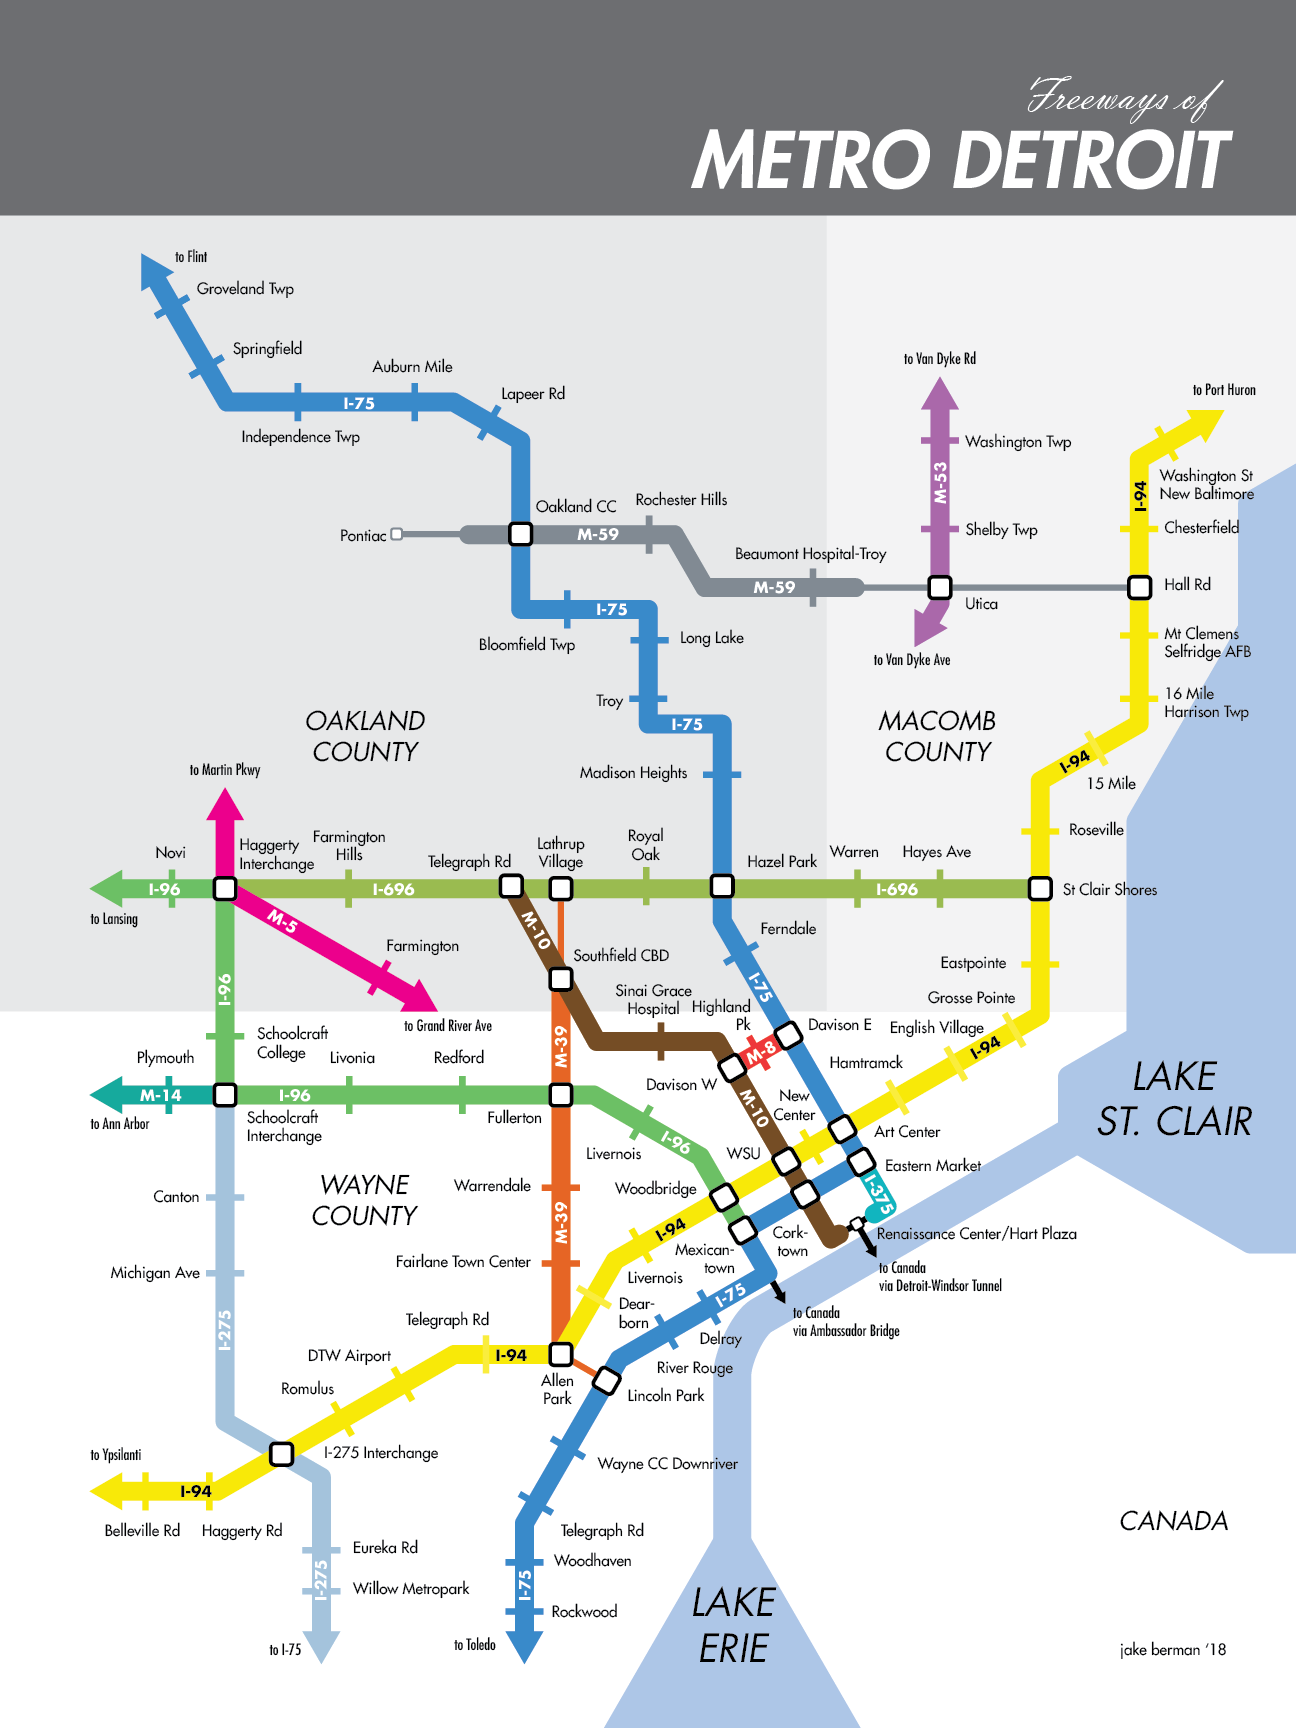 map of detroit metro area Here S What Detroit S Freeways Would Look Like As A Subway Map map of detroit metro area